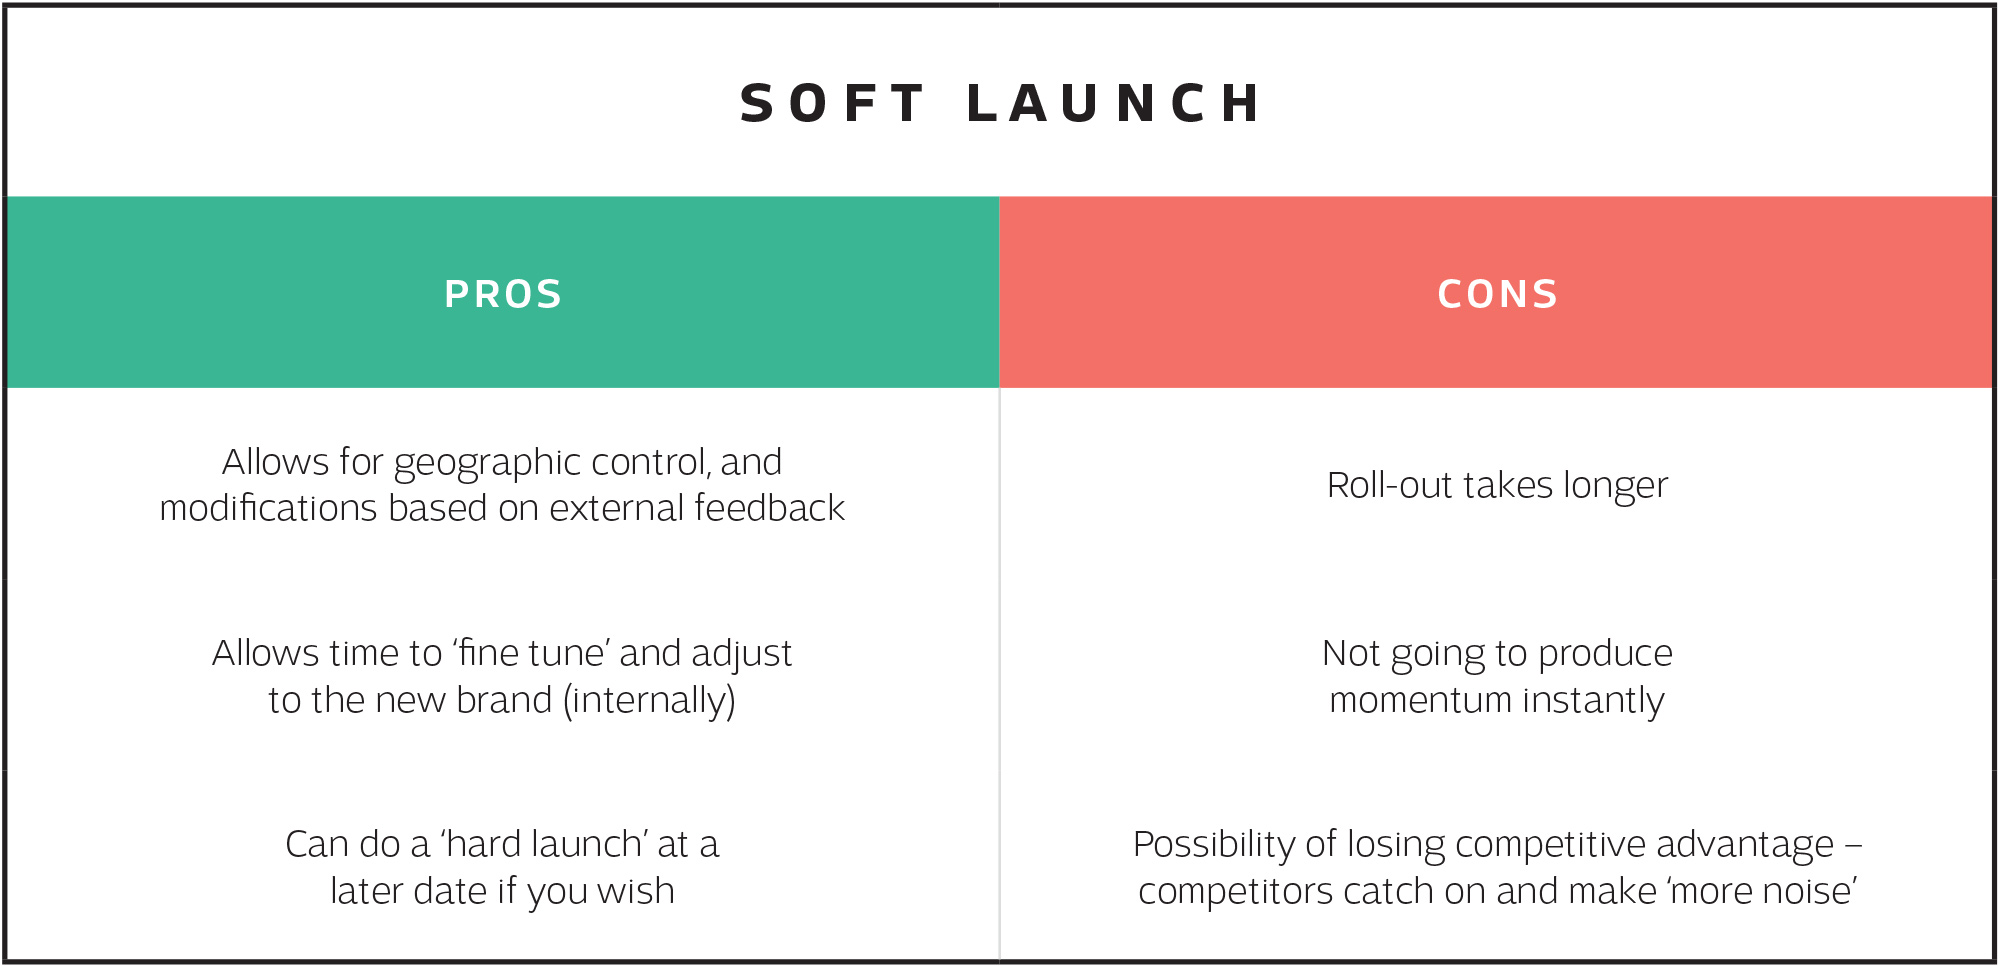 Table about the pros and cons of a soft launch on blog article by Sketch Corp.